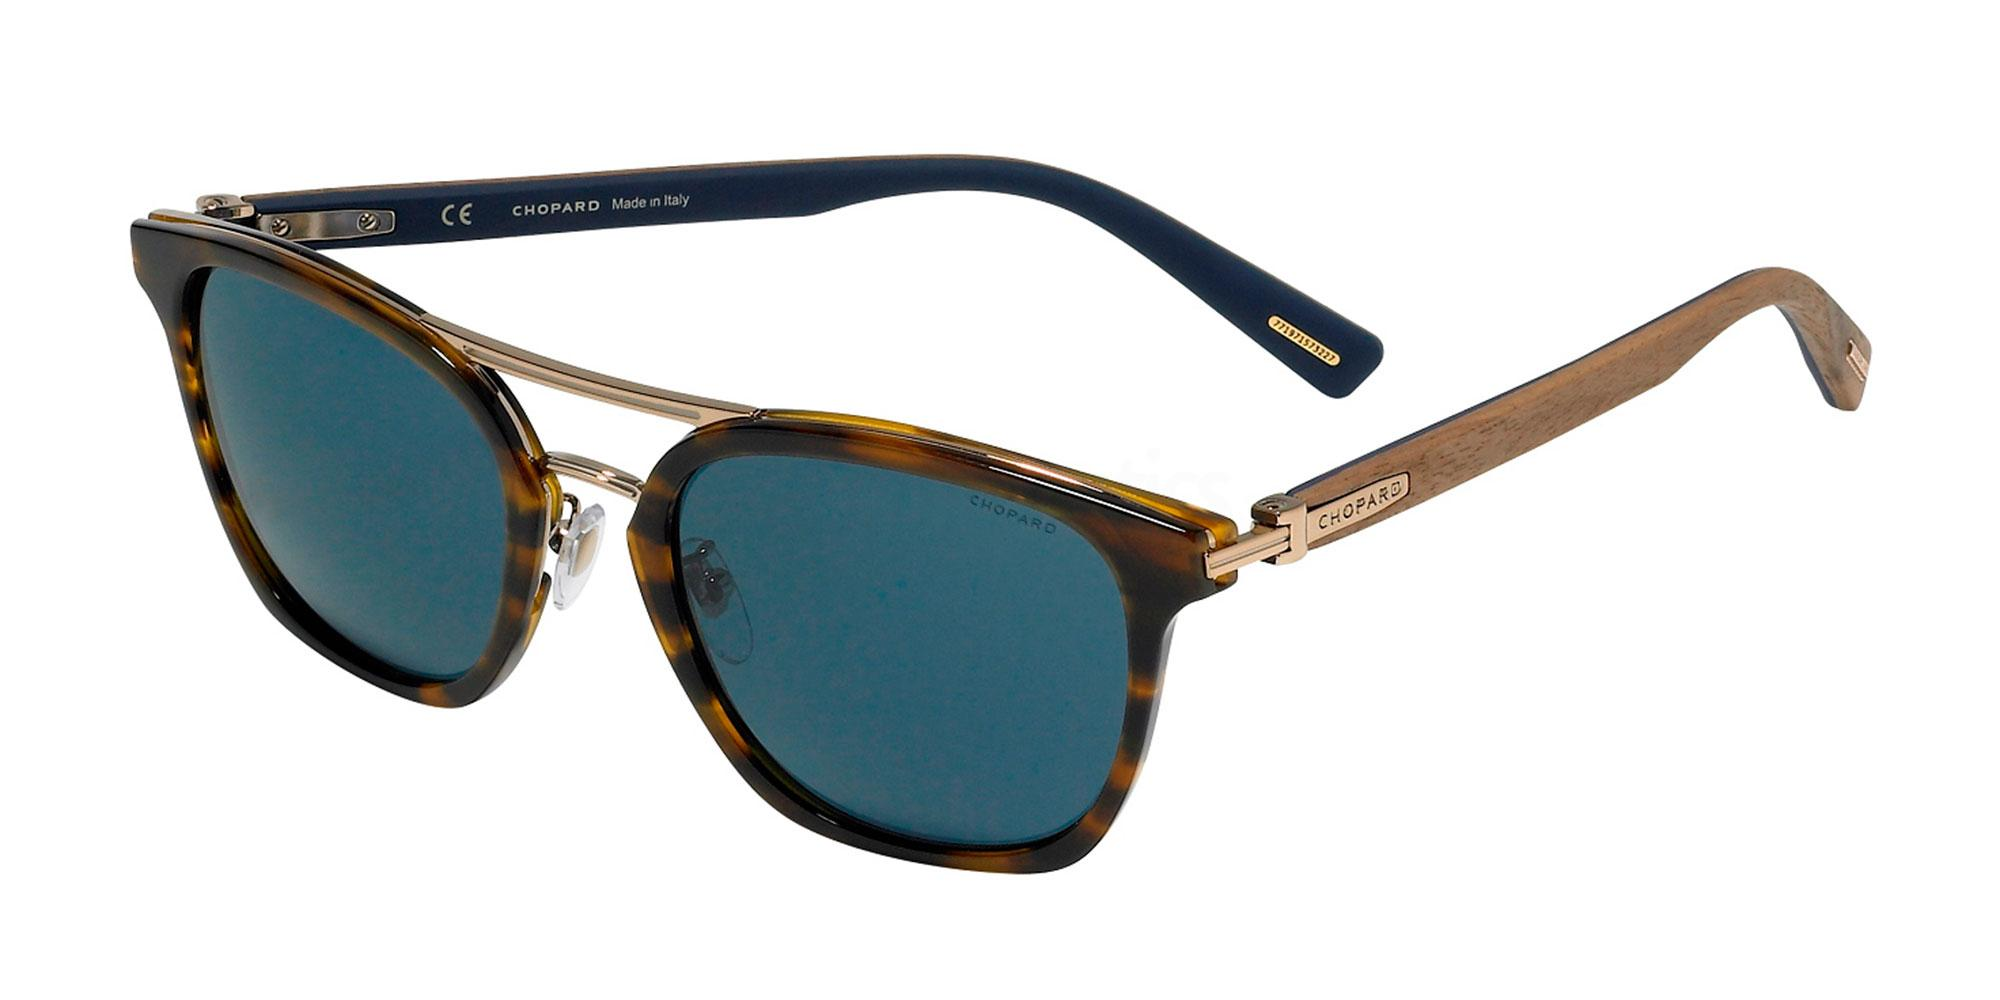 9FMP SCHC91 Sunglasses, Chopard